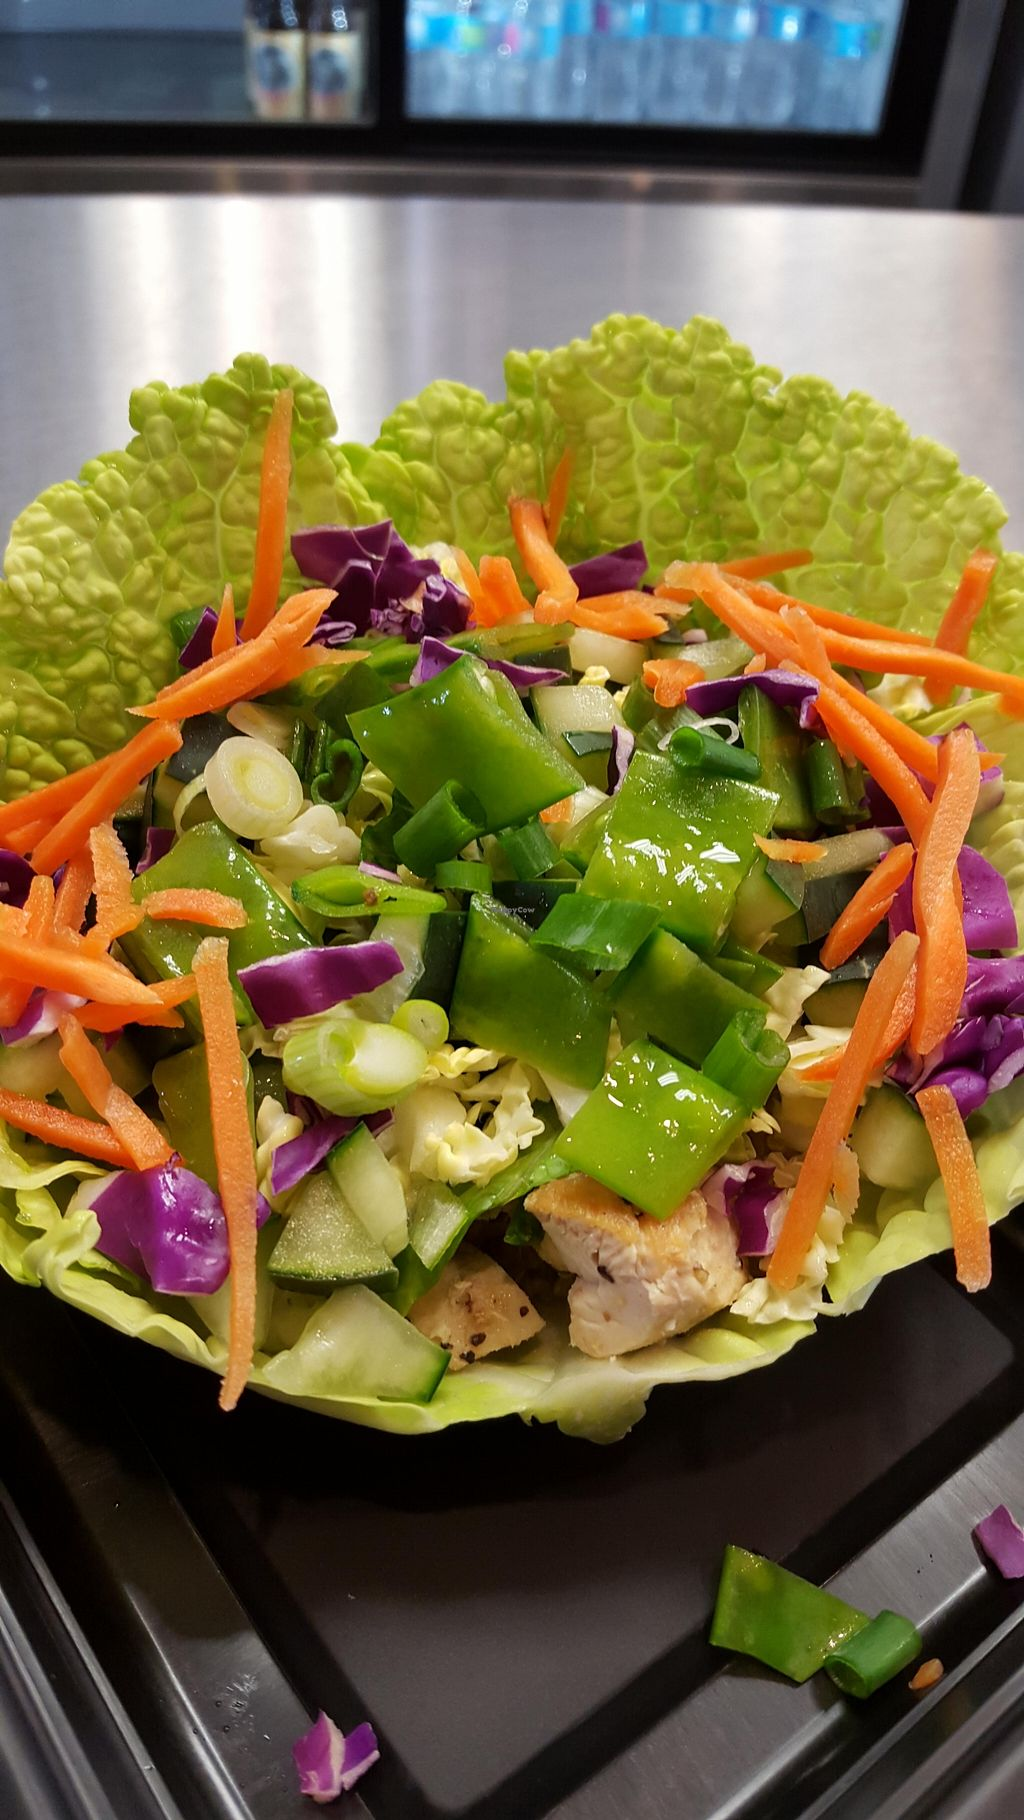 "Photo of Quarks American Bento  by <a href=""/members/profile/KimV"">KimV</a> <br/>This cabbage wrap had all the fresh veggies I could desire,  brown rice, and chicken.  Yummy!  <br/> March 26, 2016  - <a href='/contact/abuse/image/71399/141395'>Report</a>"